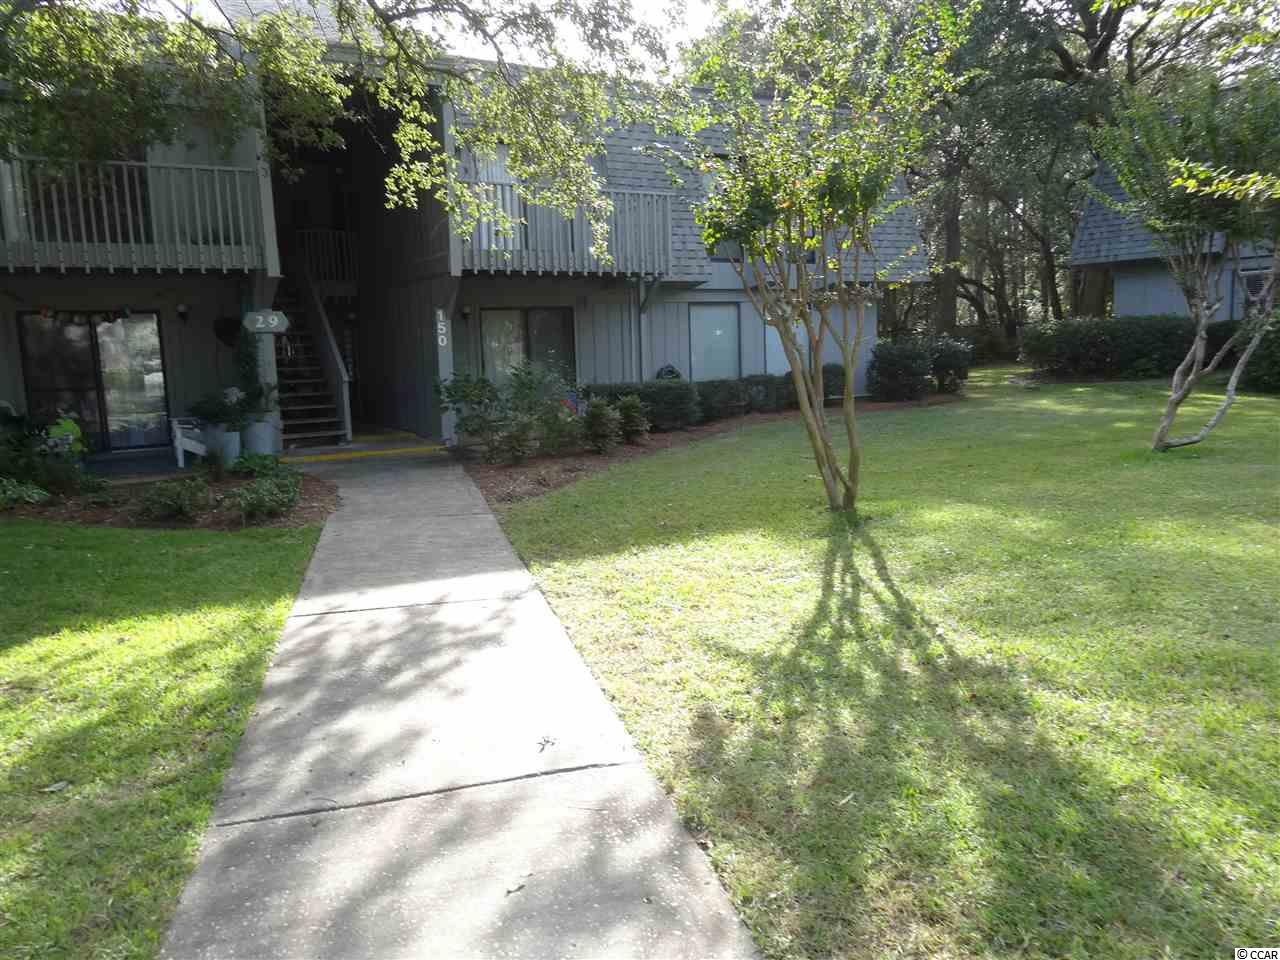 This condo is located 5 minutes from the beach. This is a first floor unit with 2 bedrooms, 1.5 baths. Many updates. Remodeled kitchen now has large breakfast bar with lots of storage. Living room has a sliding glass door to the patio. Living room, dining and kitchen have laminate flooring. Bedrooms have carpet. Salt Marsh Cove offers a swimming pool, clubhouse overlooking the lake, and a dock on the saltwater creek. Conveniently located on the mainland at Litchfield Beach with all the conveniences of grocery stores, restaurants and shopping nearby.